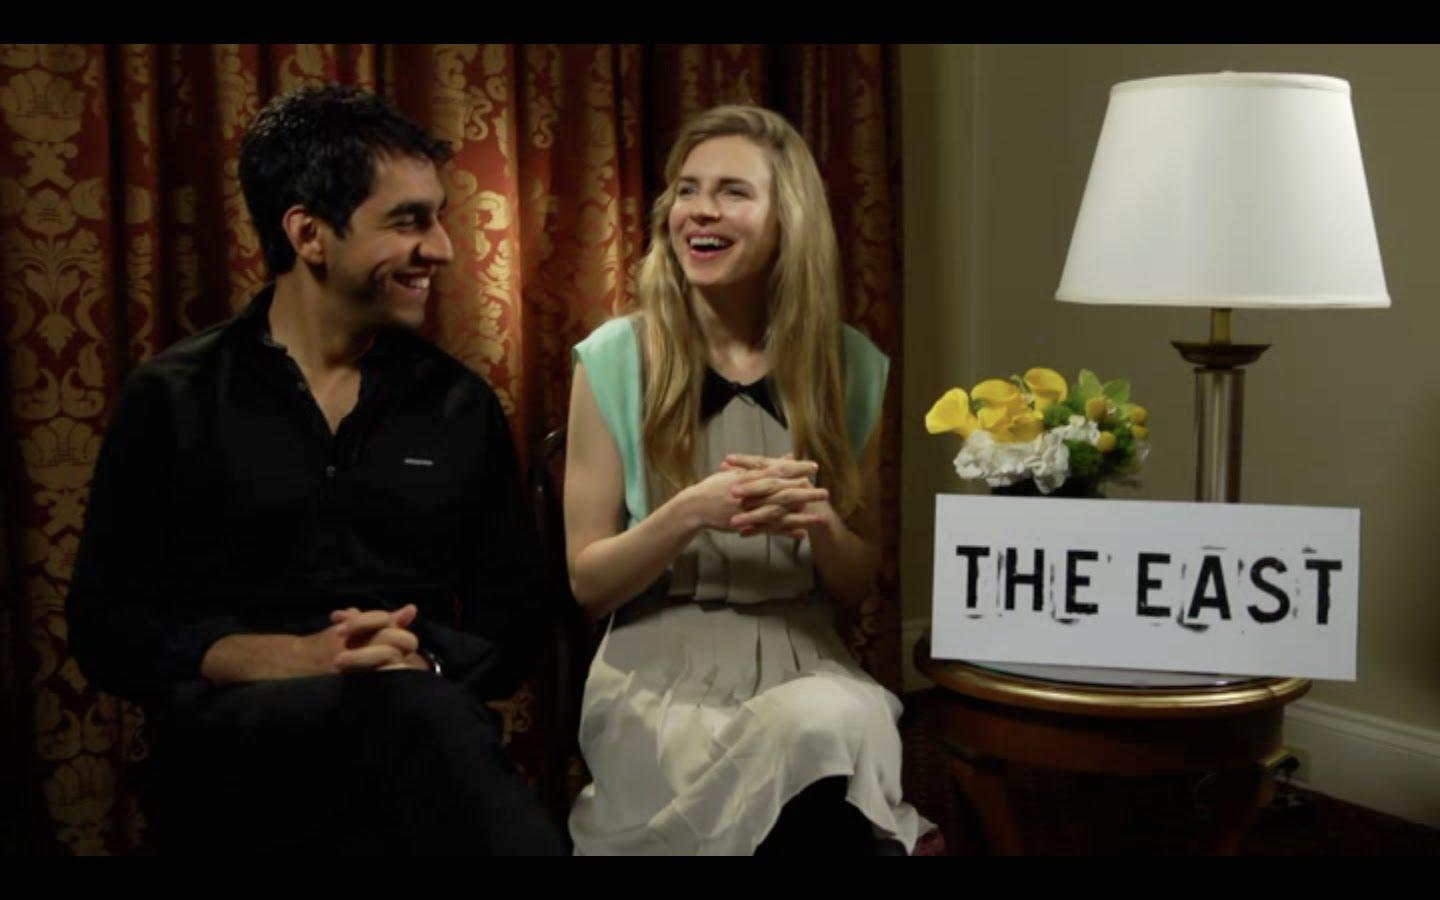 THE EAST - THE EAST Interview: Brit Marling and Zal Batmanglij (Director)